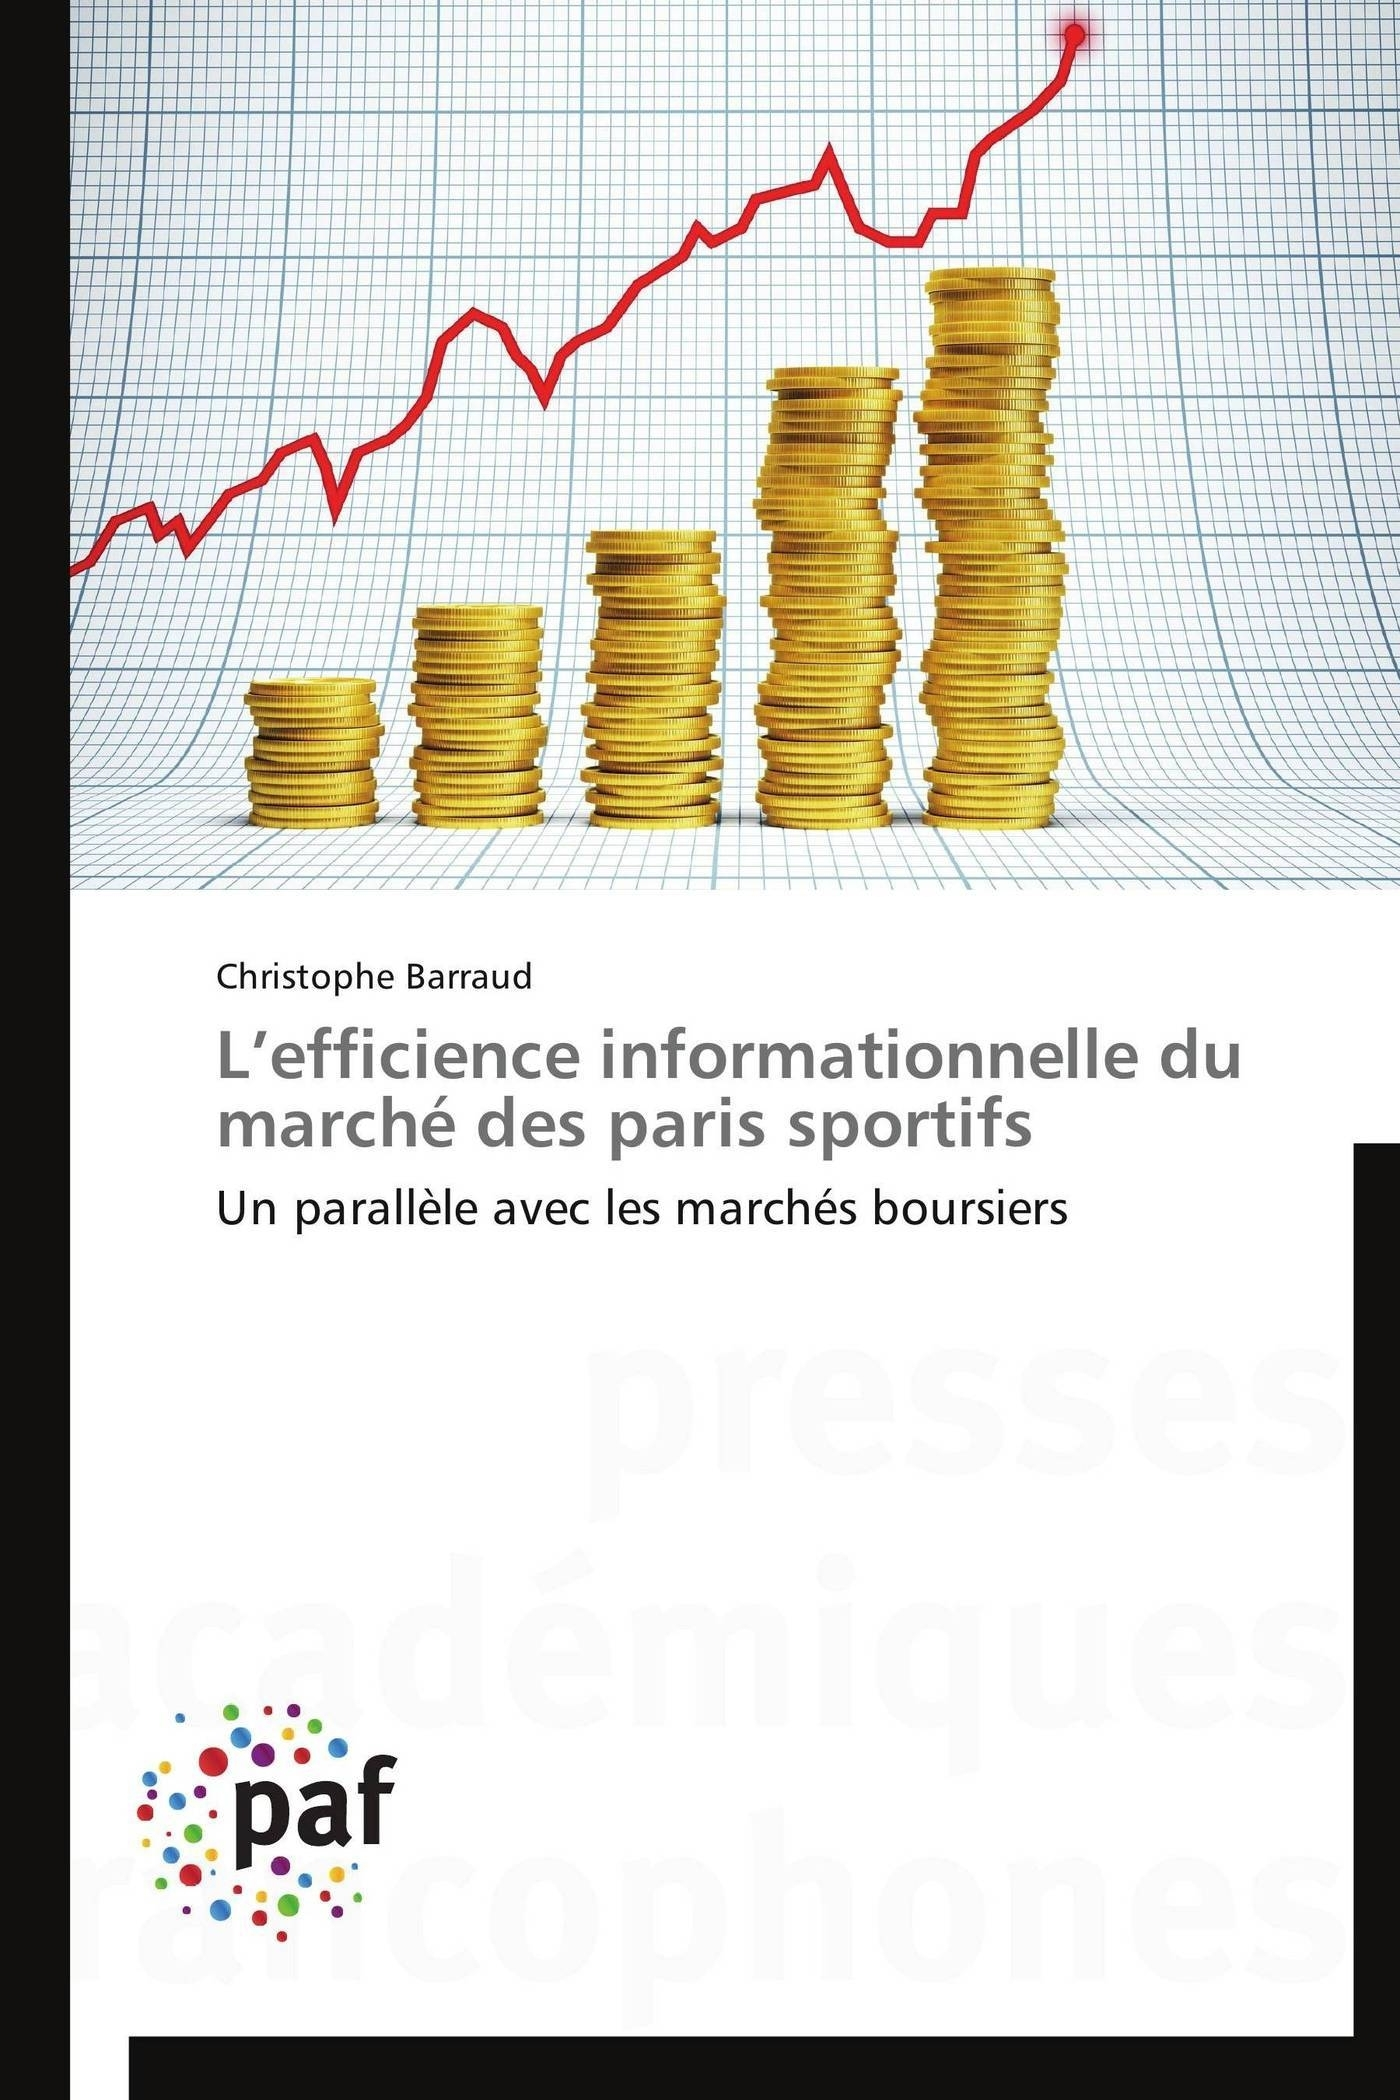 L EFFICIENCE INFORMATIONNELLE DU MARCHE DES PARIS SPORTIFS